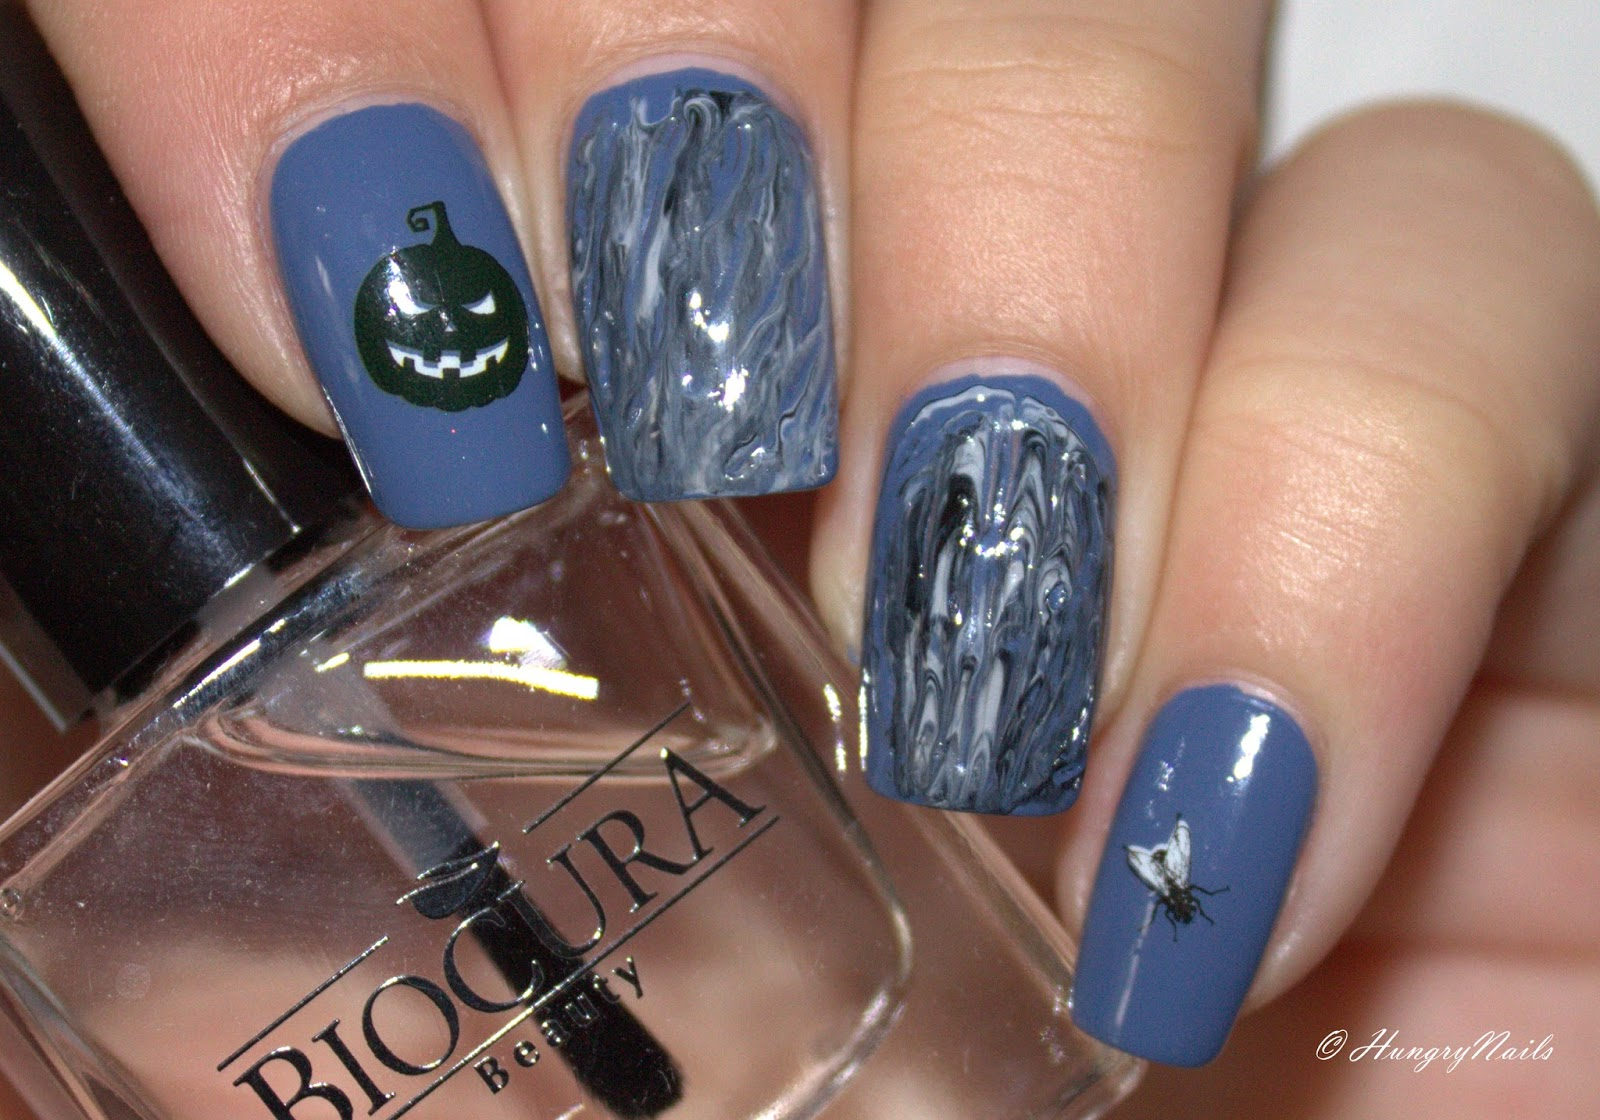 http://hungrynails.blogspot.de/2014/10/blue-friday-resurrection.html